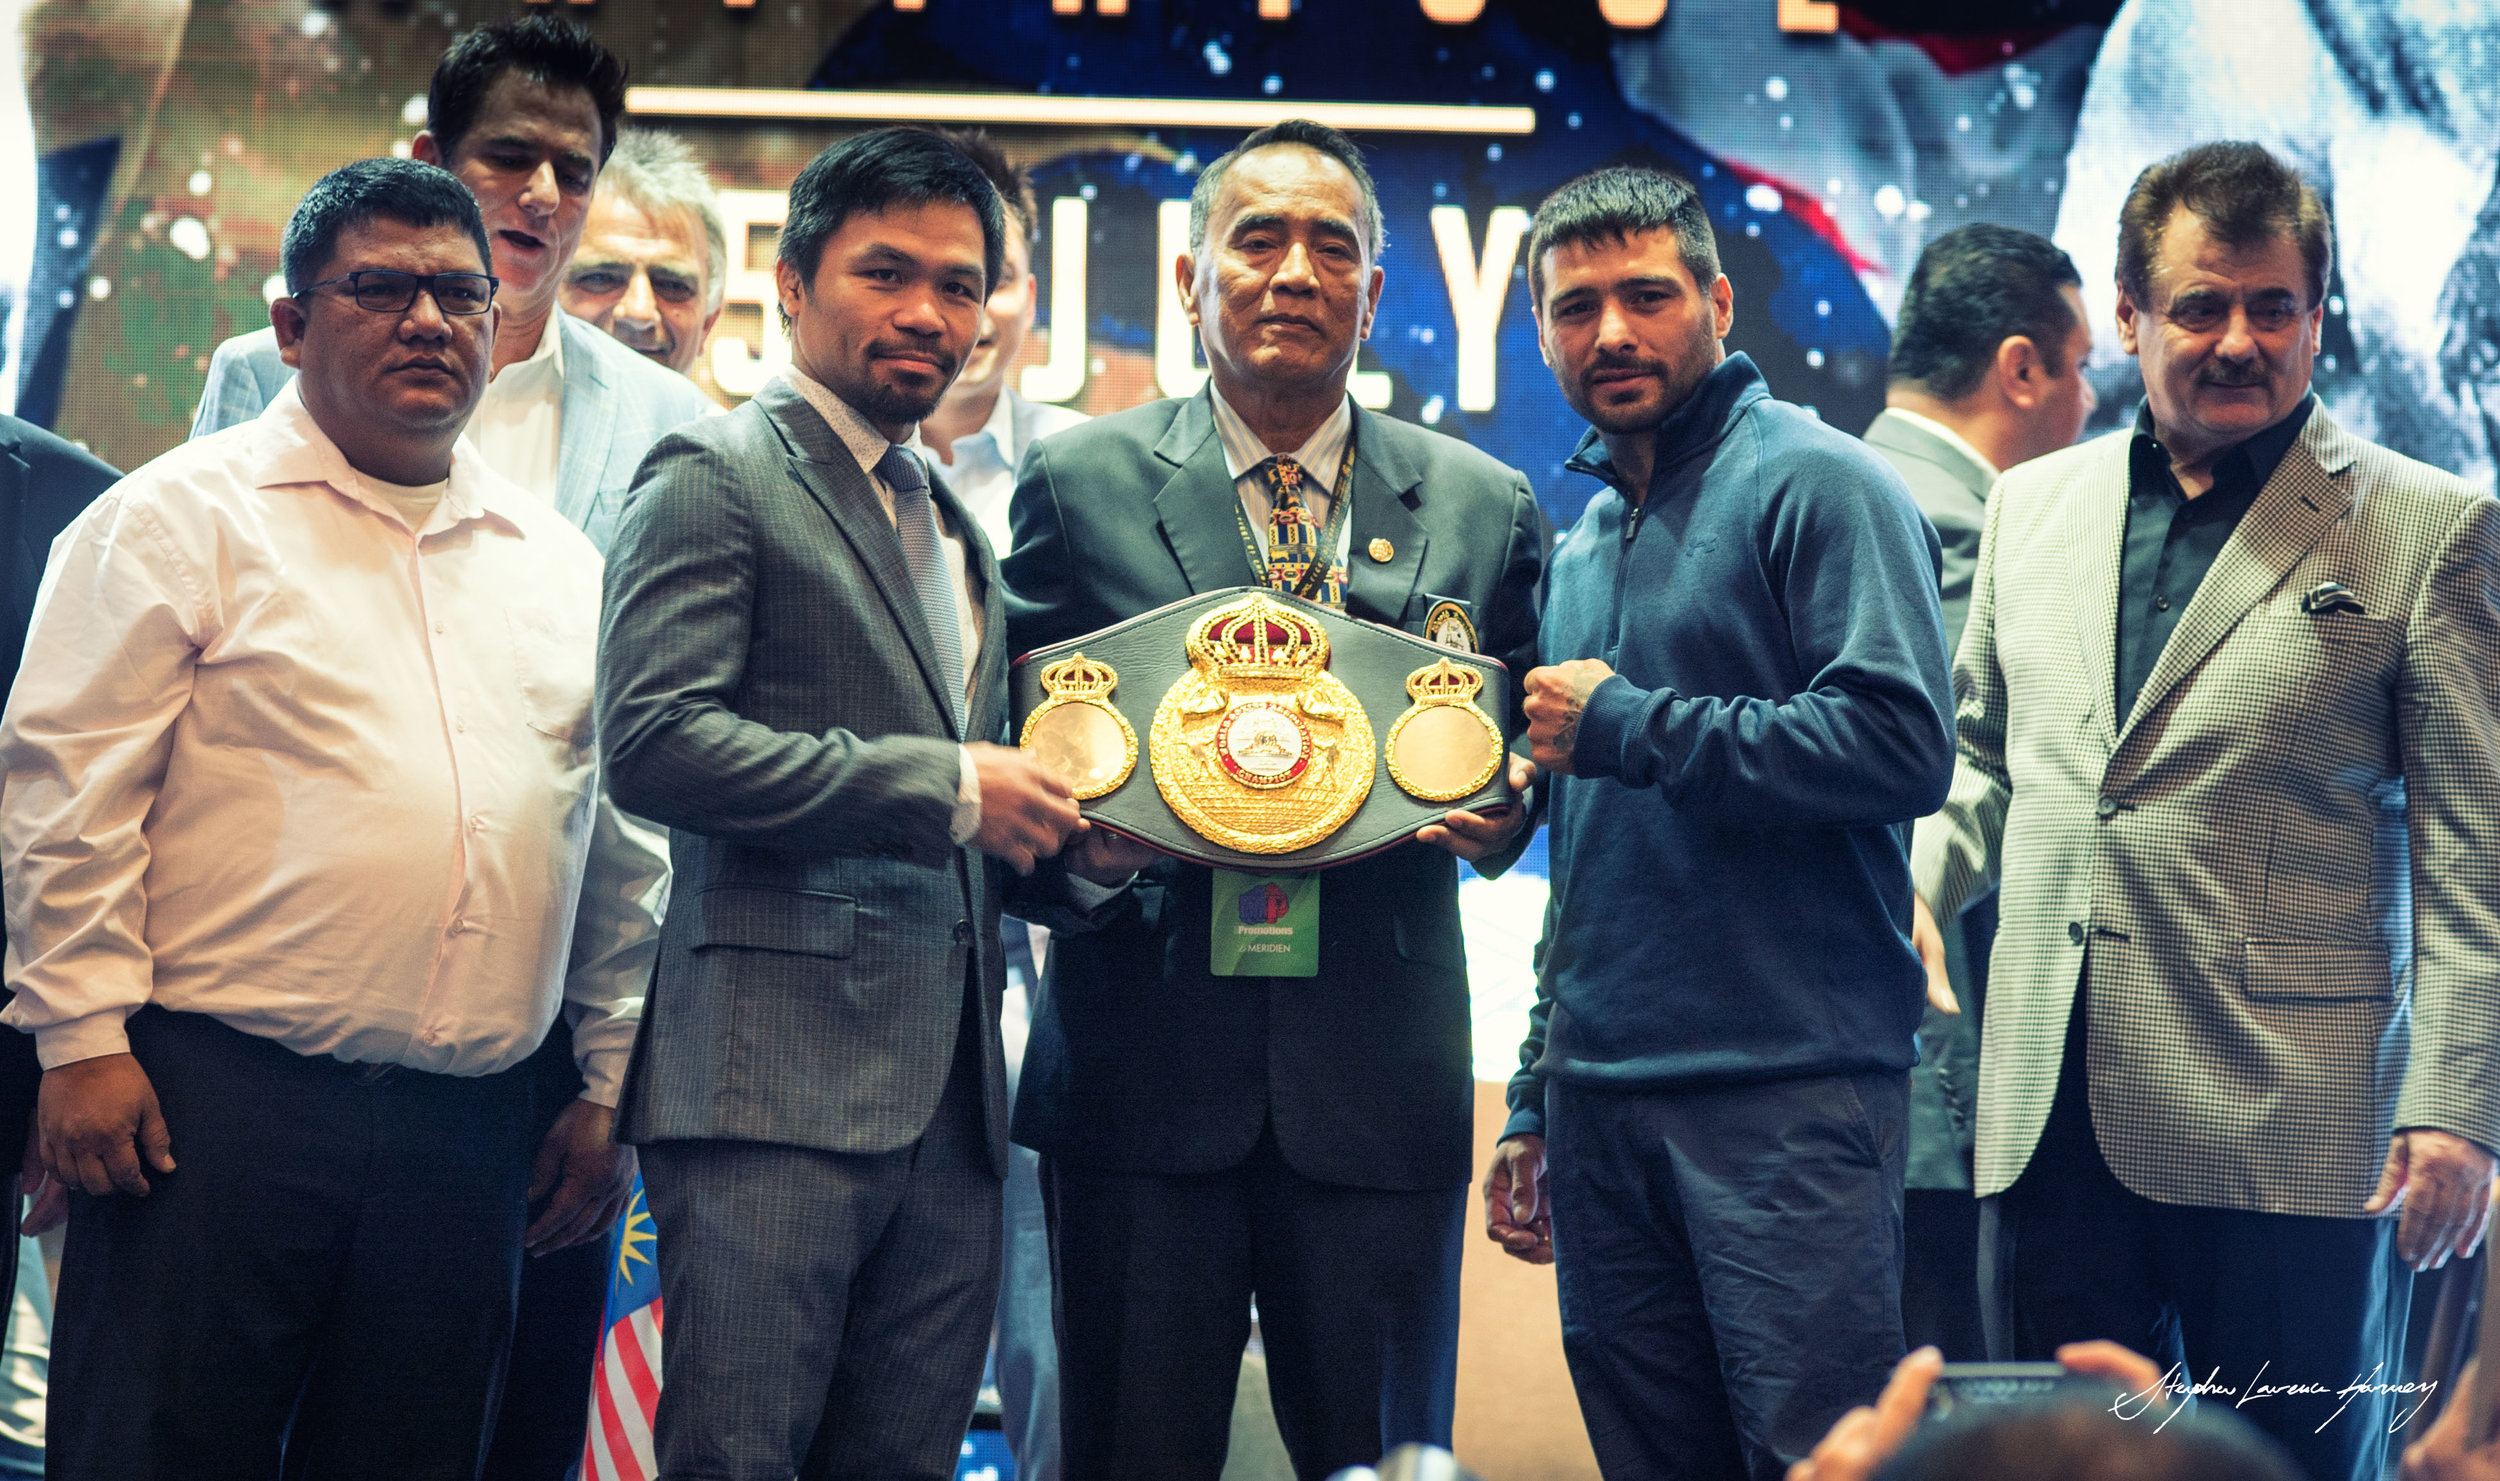 Manny Pacquiao to fight Lucas Matthysse for WBA welterweight title